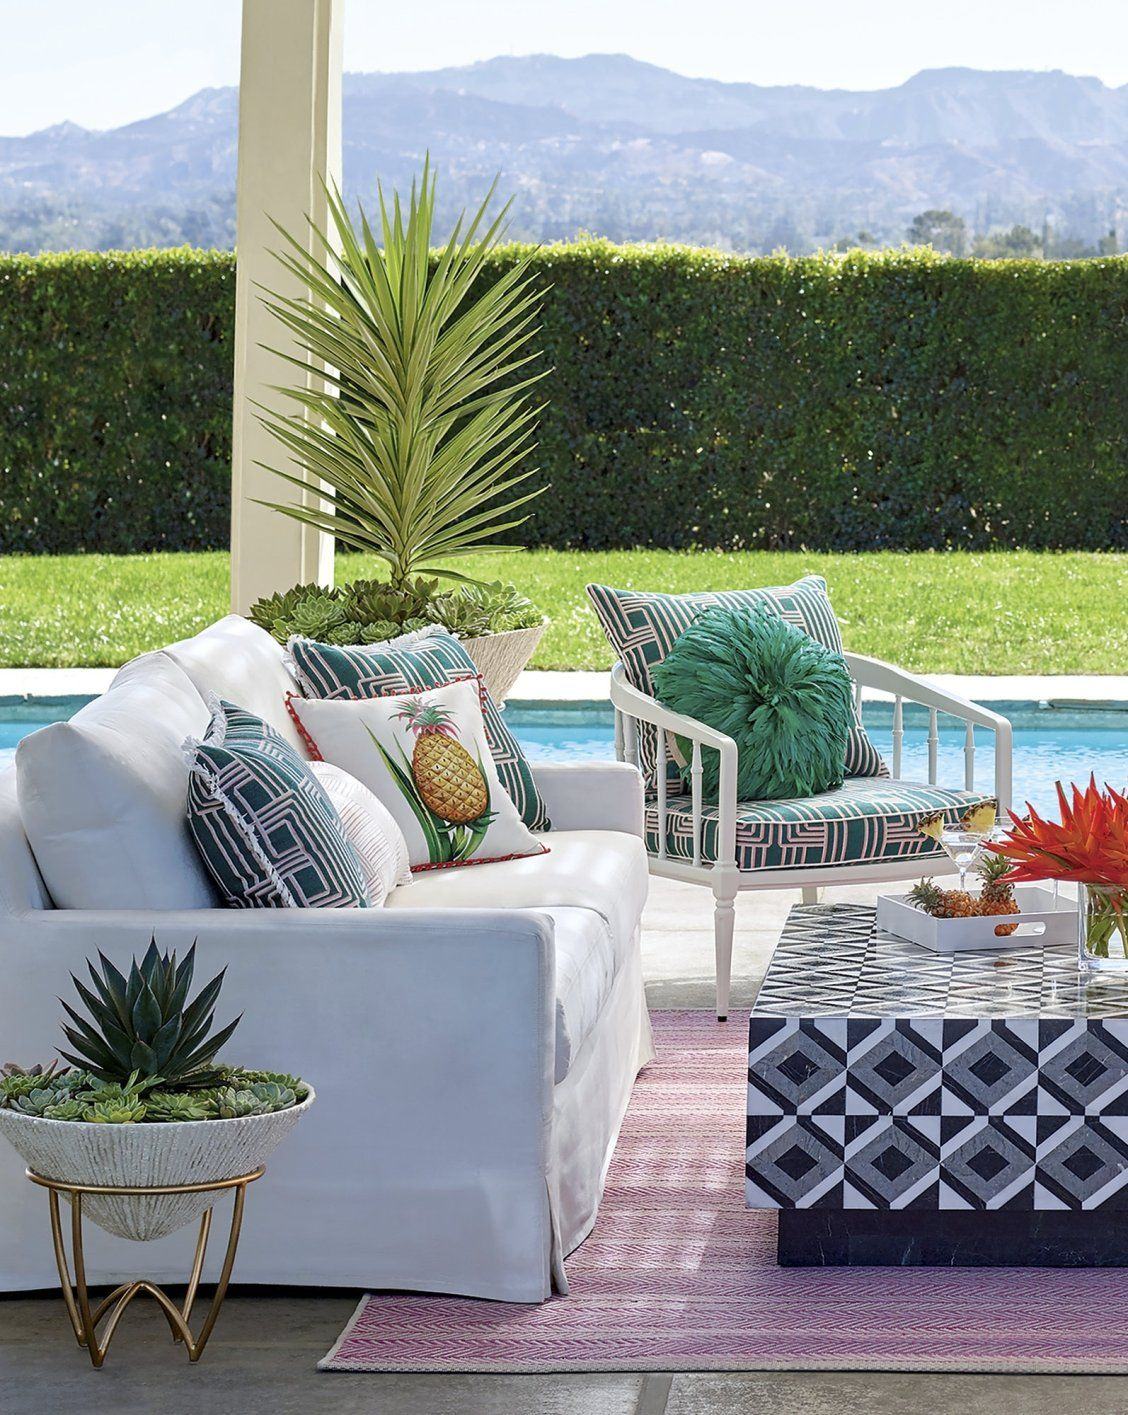 Bring The Comfort Of Your Living Room Outdoors. Inspired By Furnishings  Found At High